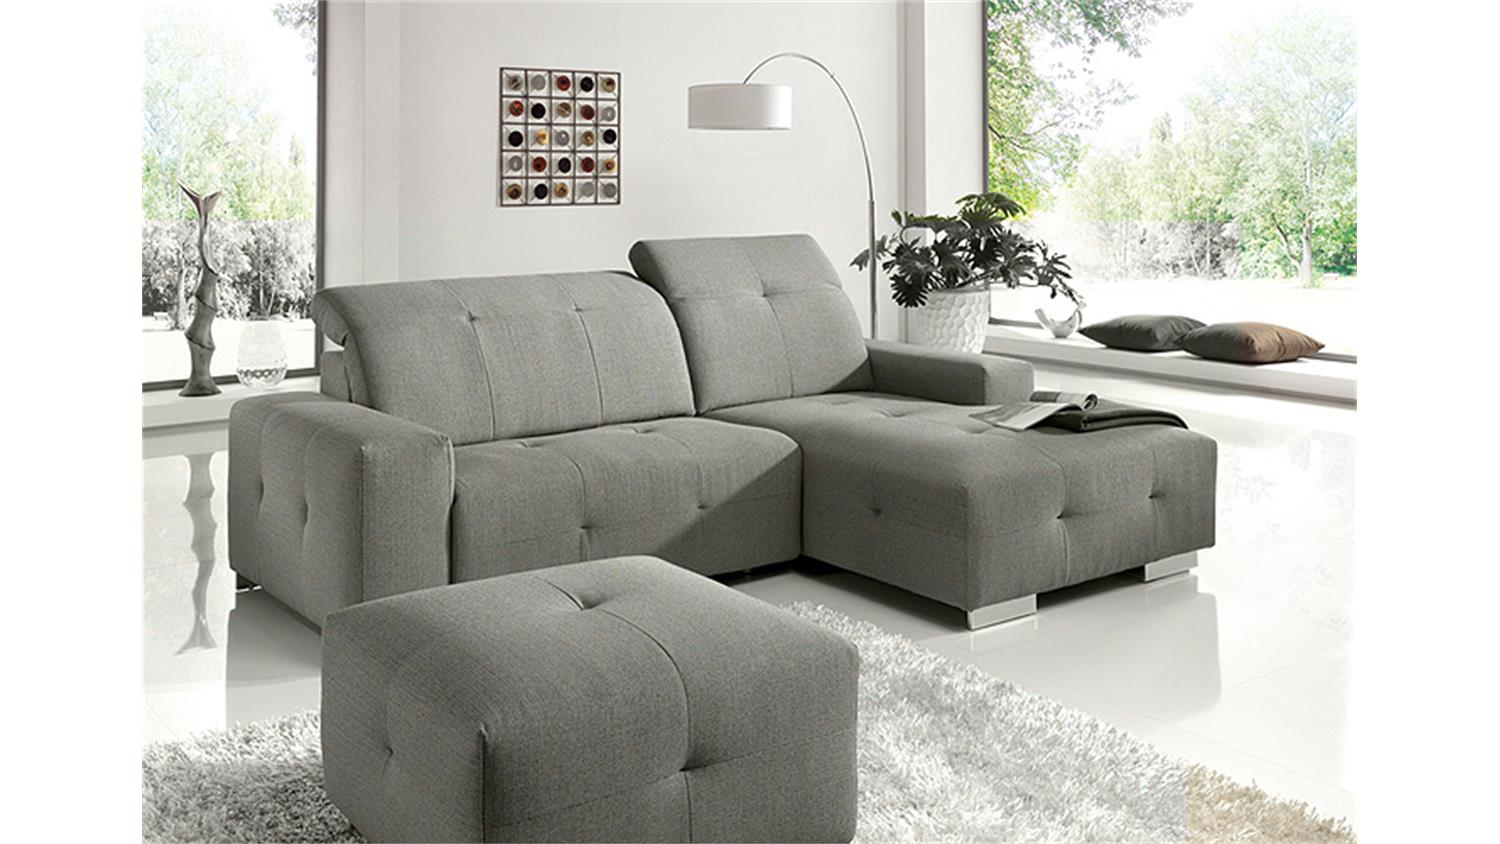 ecksofa relaxfunktion inspirierendes design. Black Bedroom Furniture Sets. Home Design Ideas